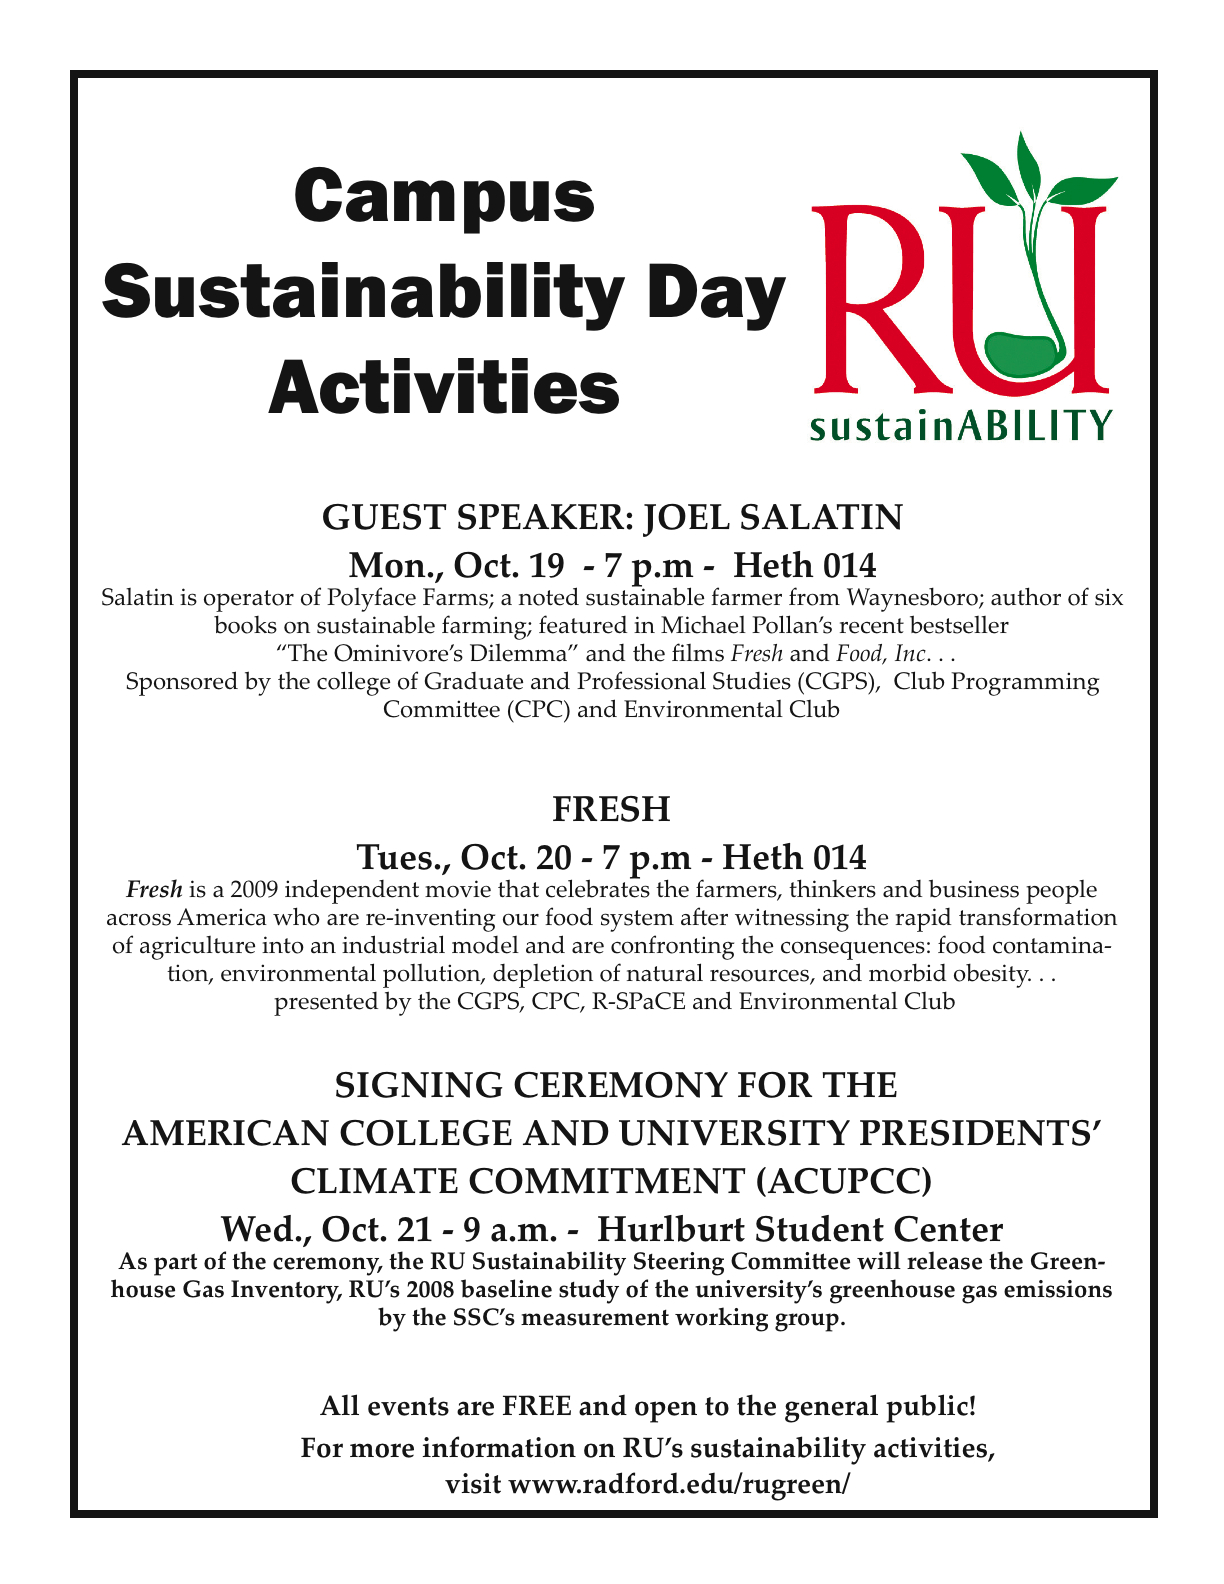 Campus SustainABILITY Day flyer